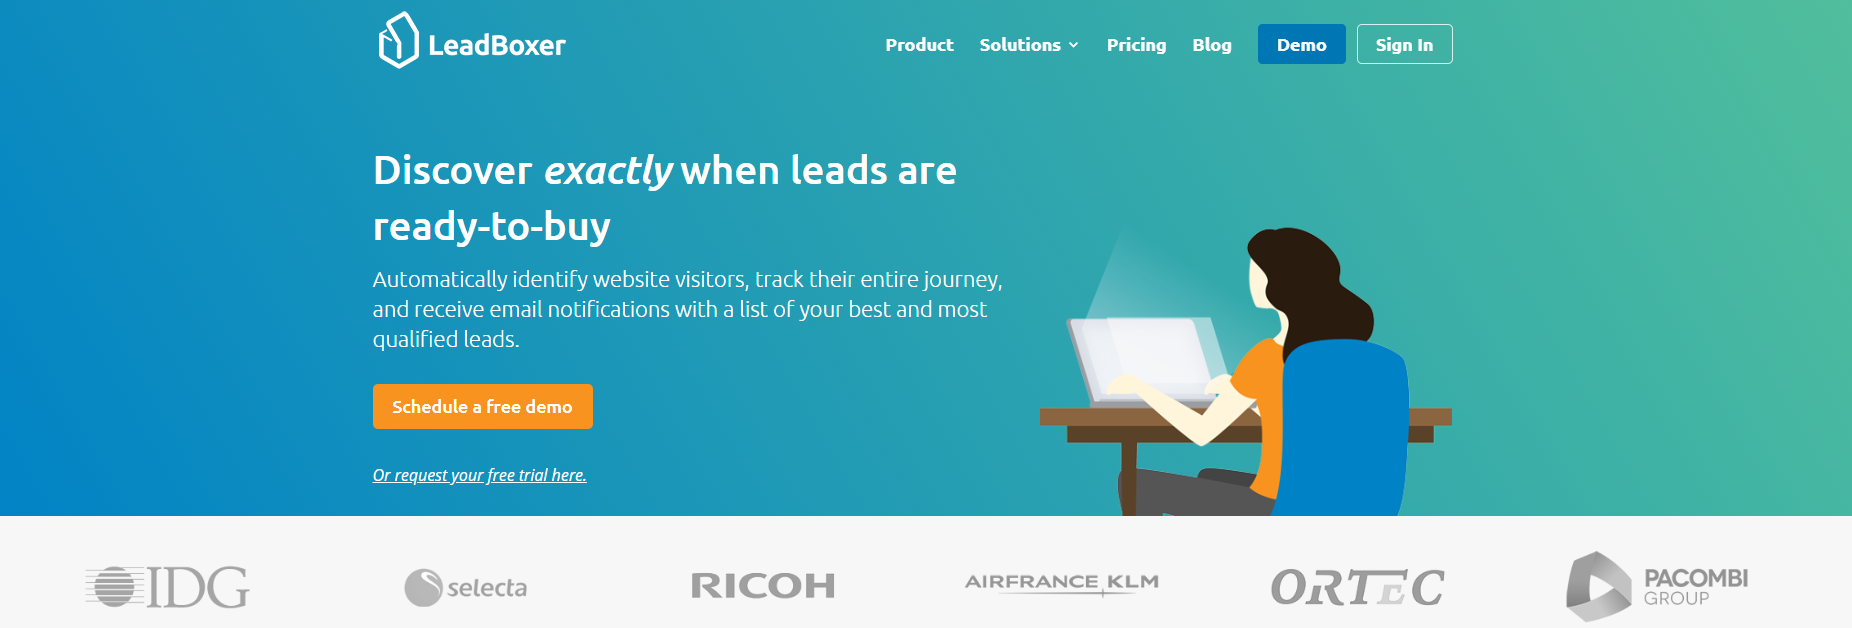 leadboxer - lead generation tool